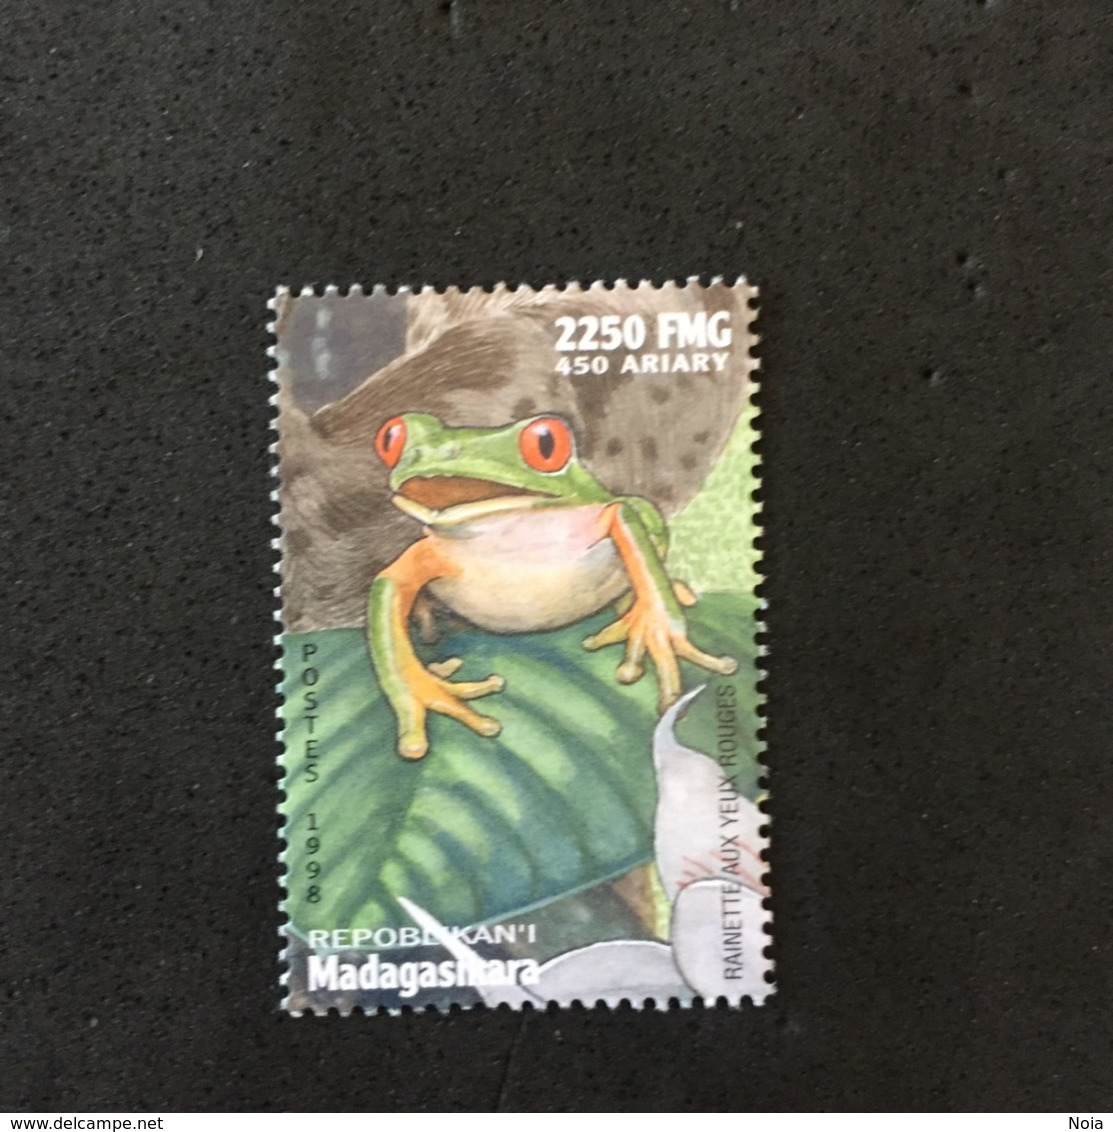 MADAGASCAR. FROG. MNH. 5R1206A - Frogs